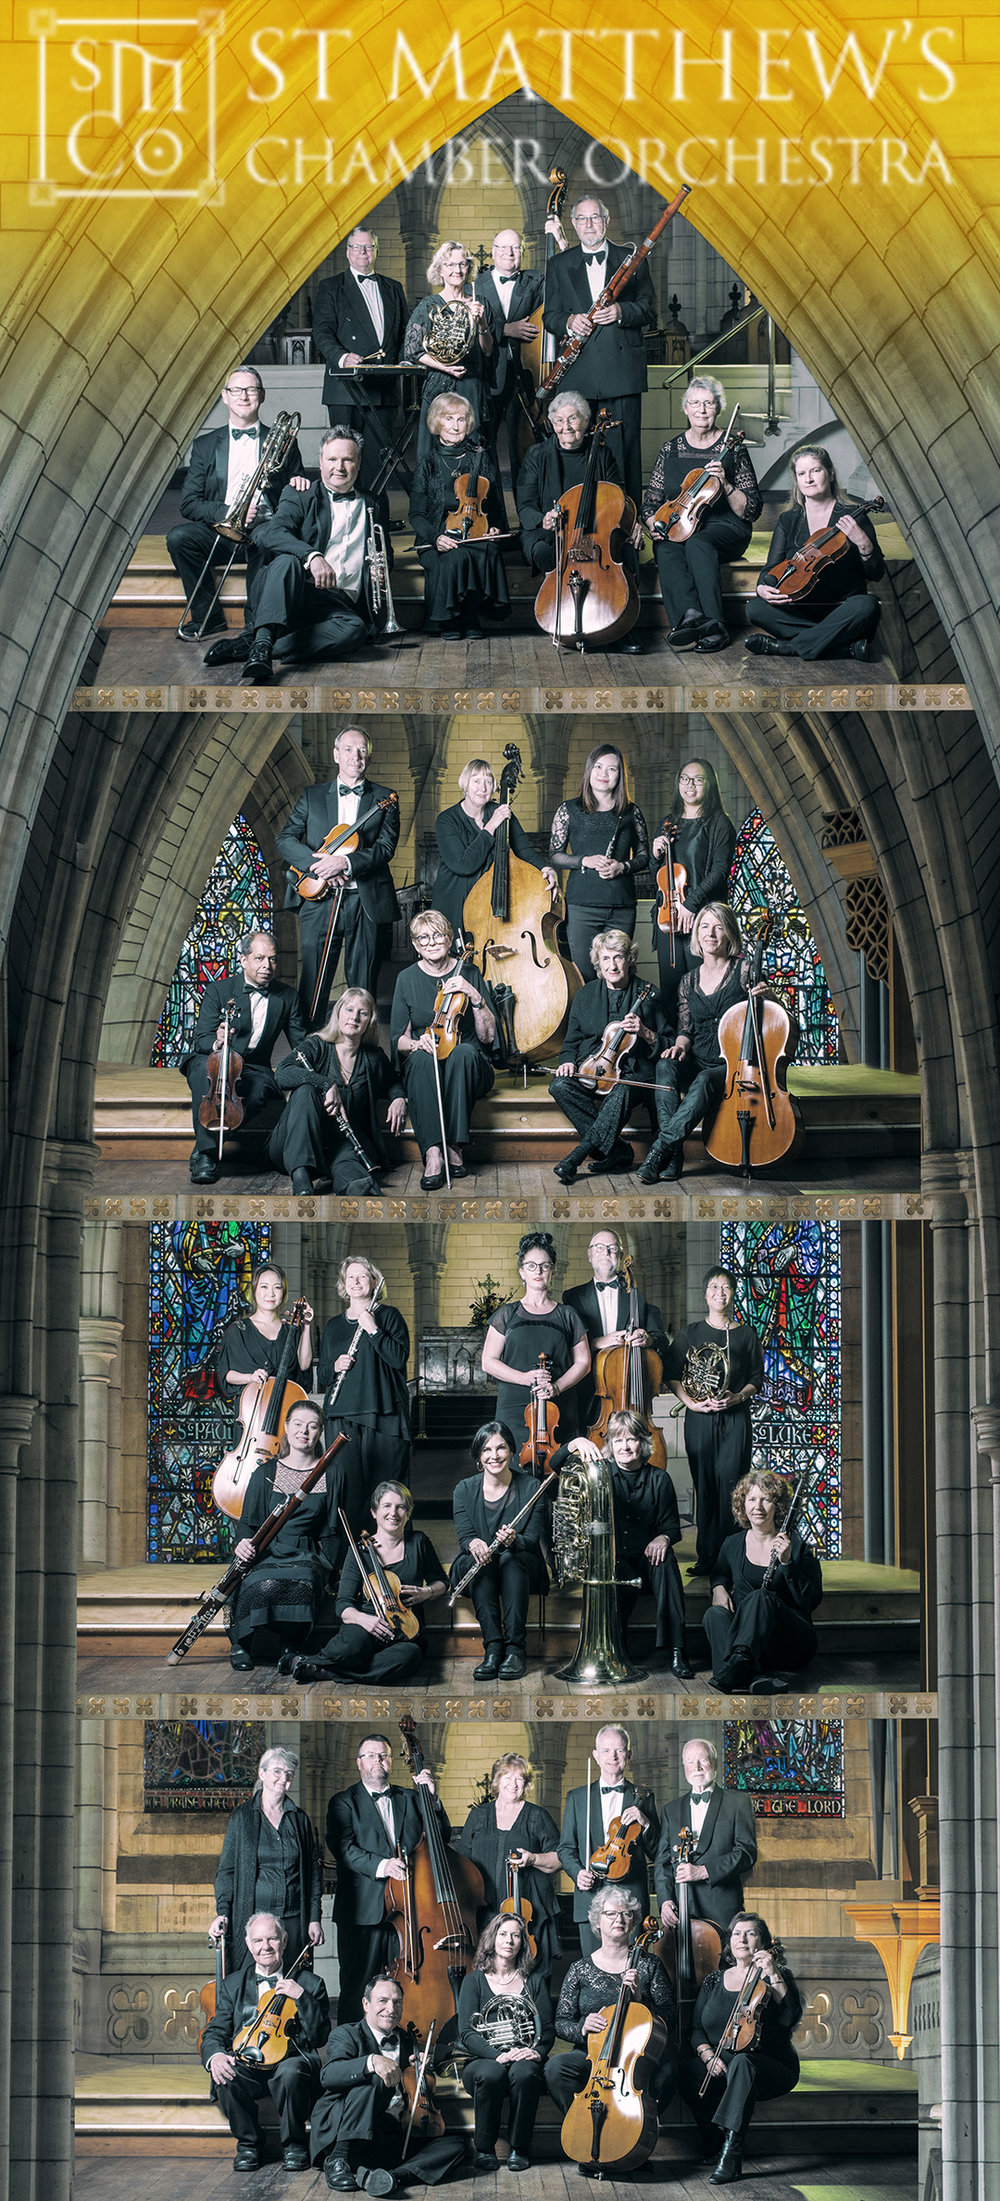 Group portrait of the St. Matthew's Chamber Orchestra